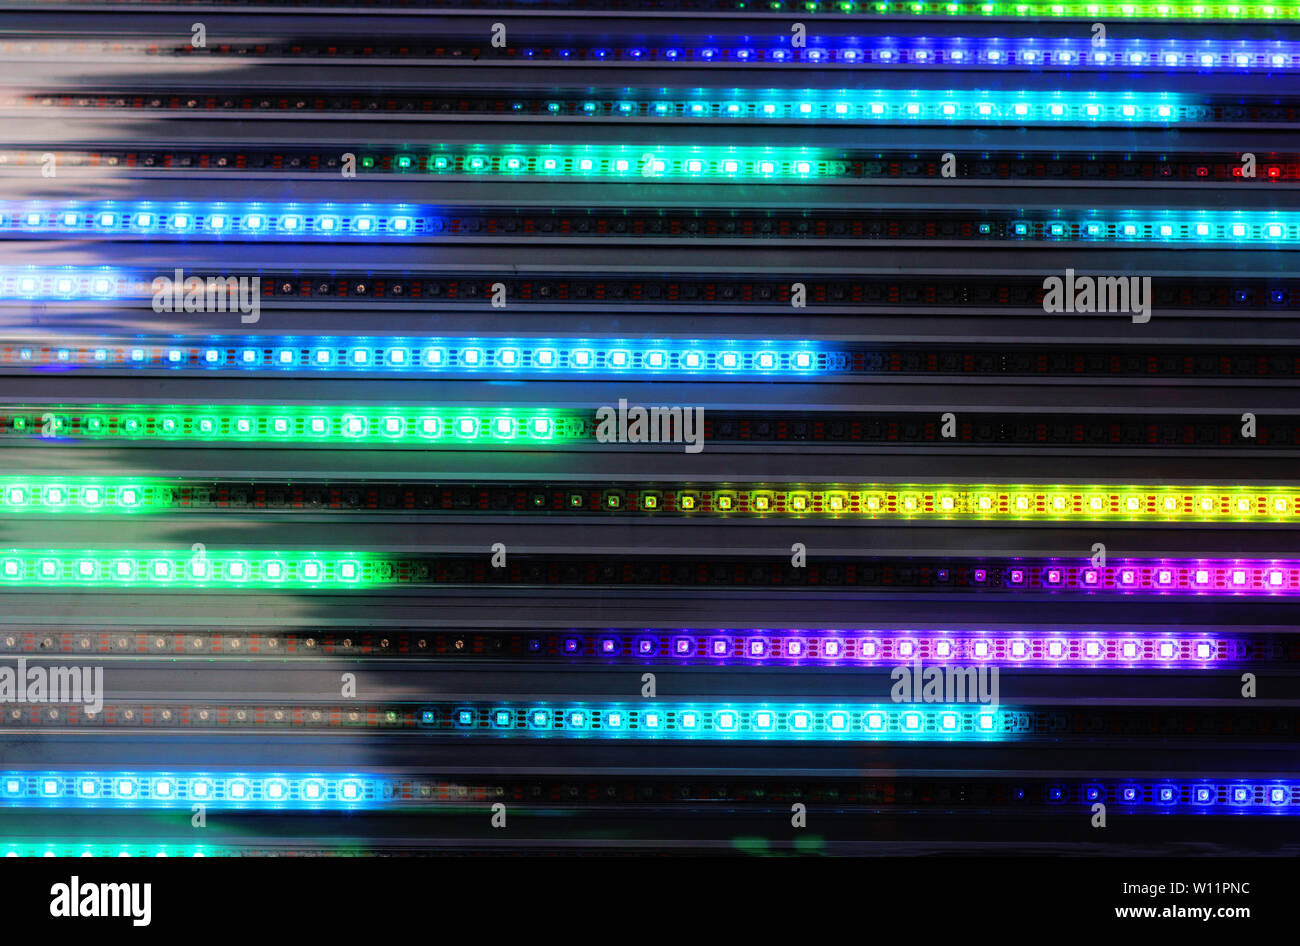 multi colored background with horizonal light lines shining green, blue and yellow - Stock Image